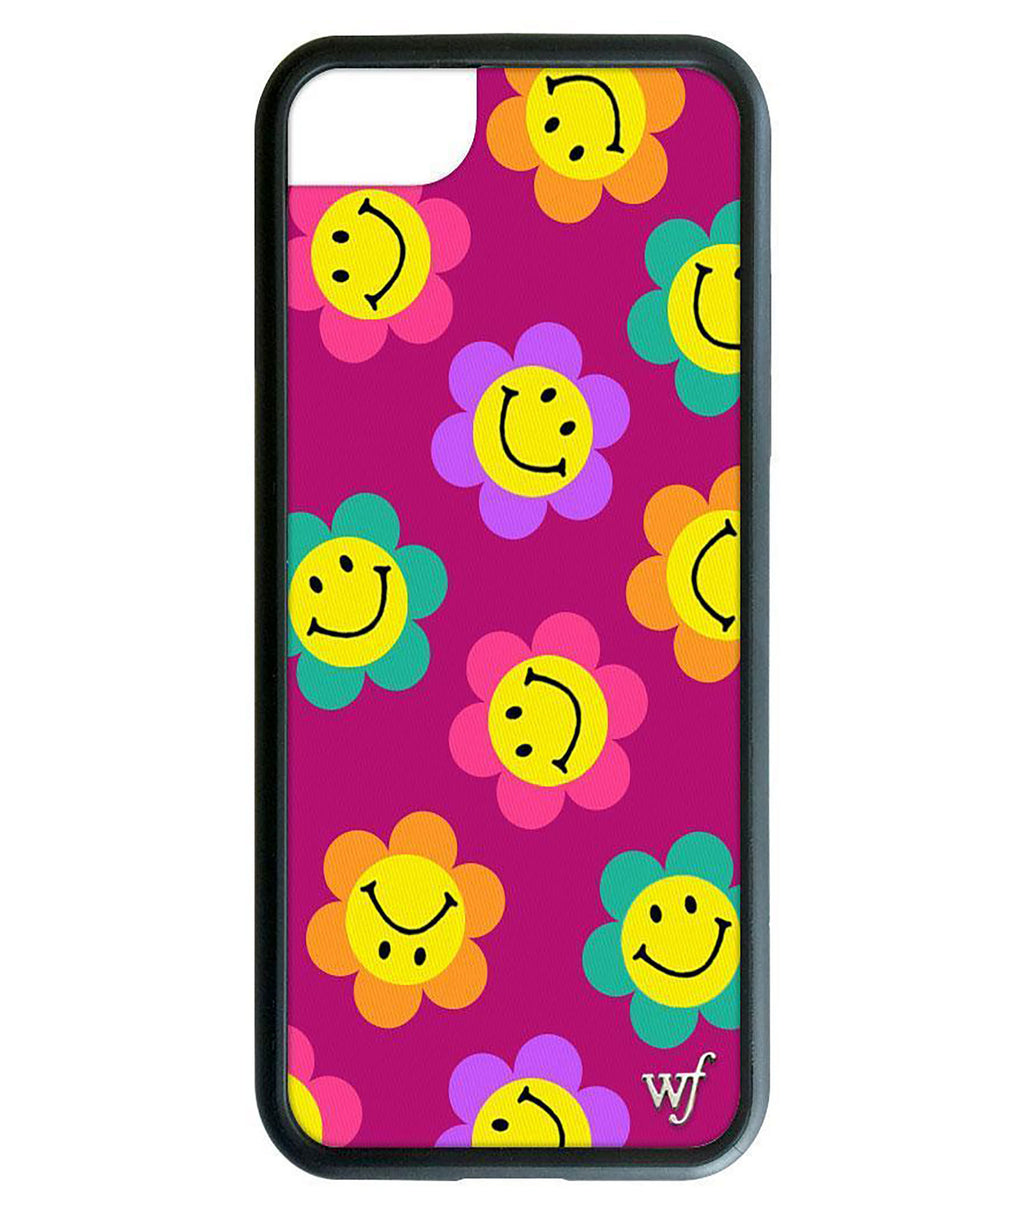 Wildflower Phone Case Magenta Smiles